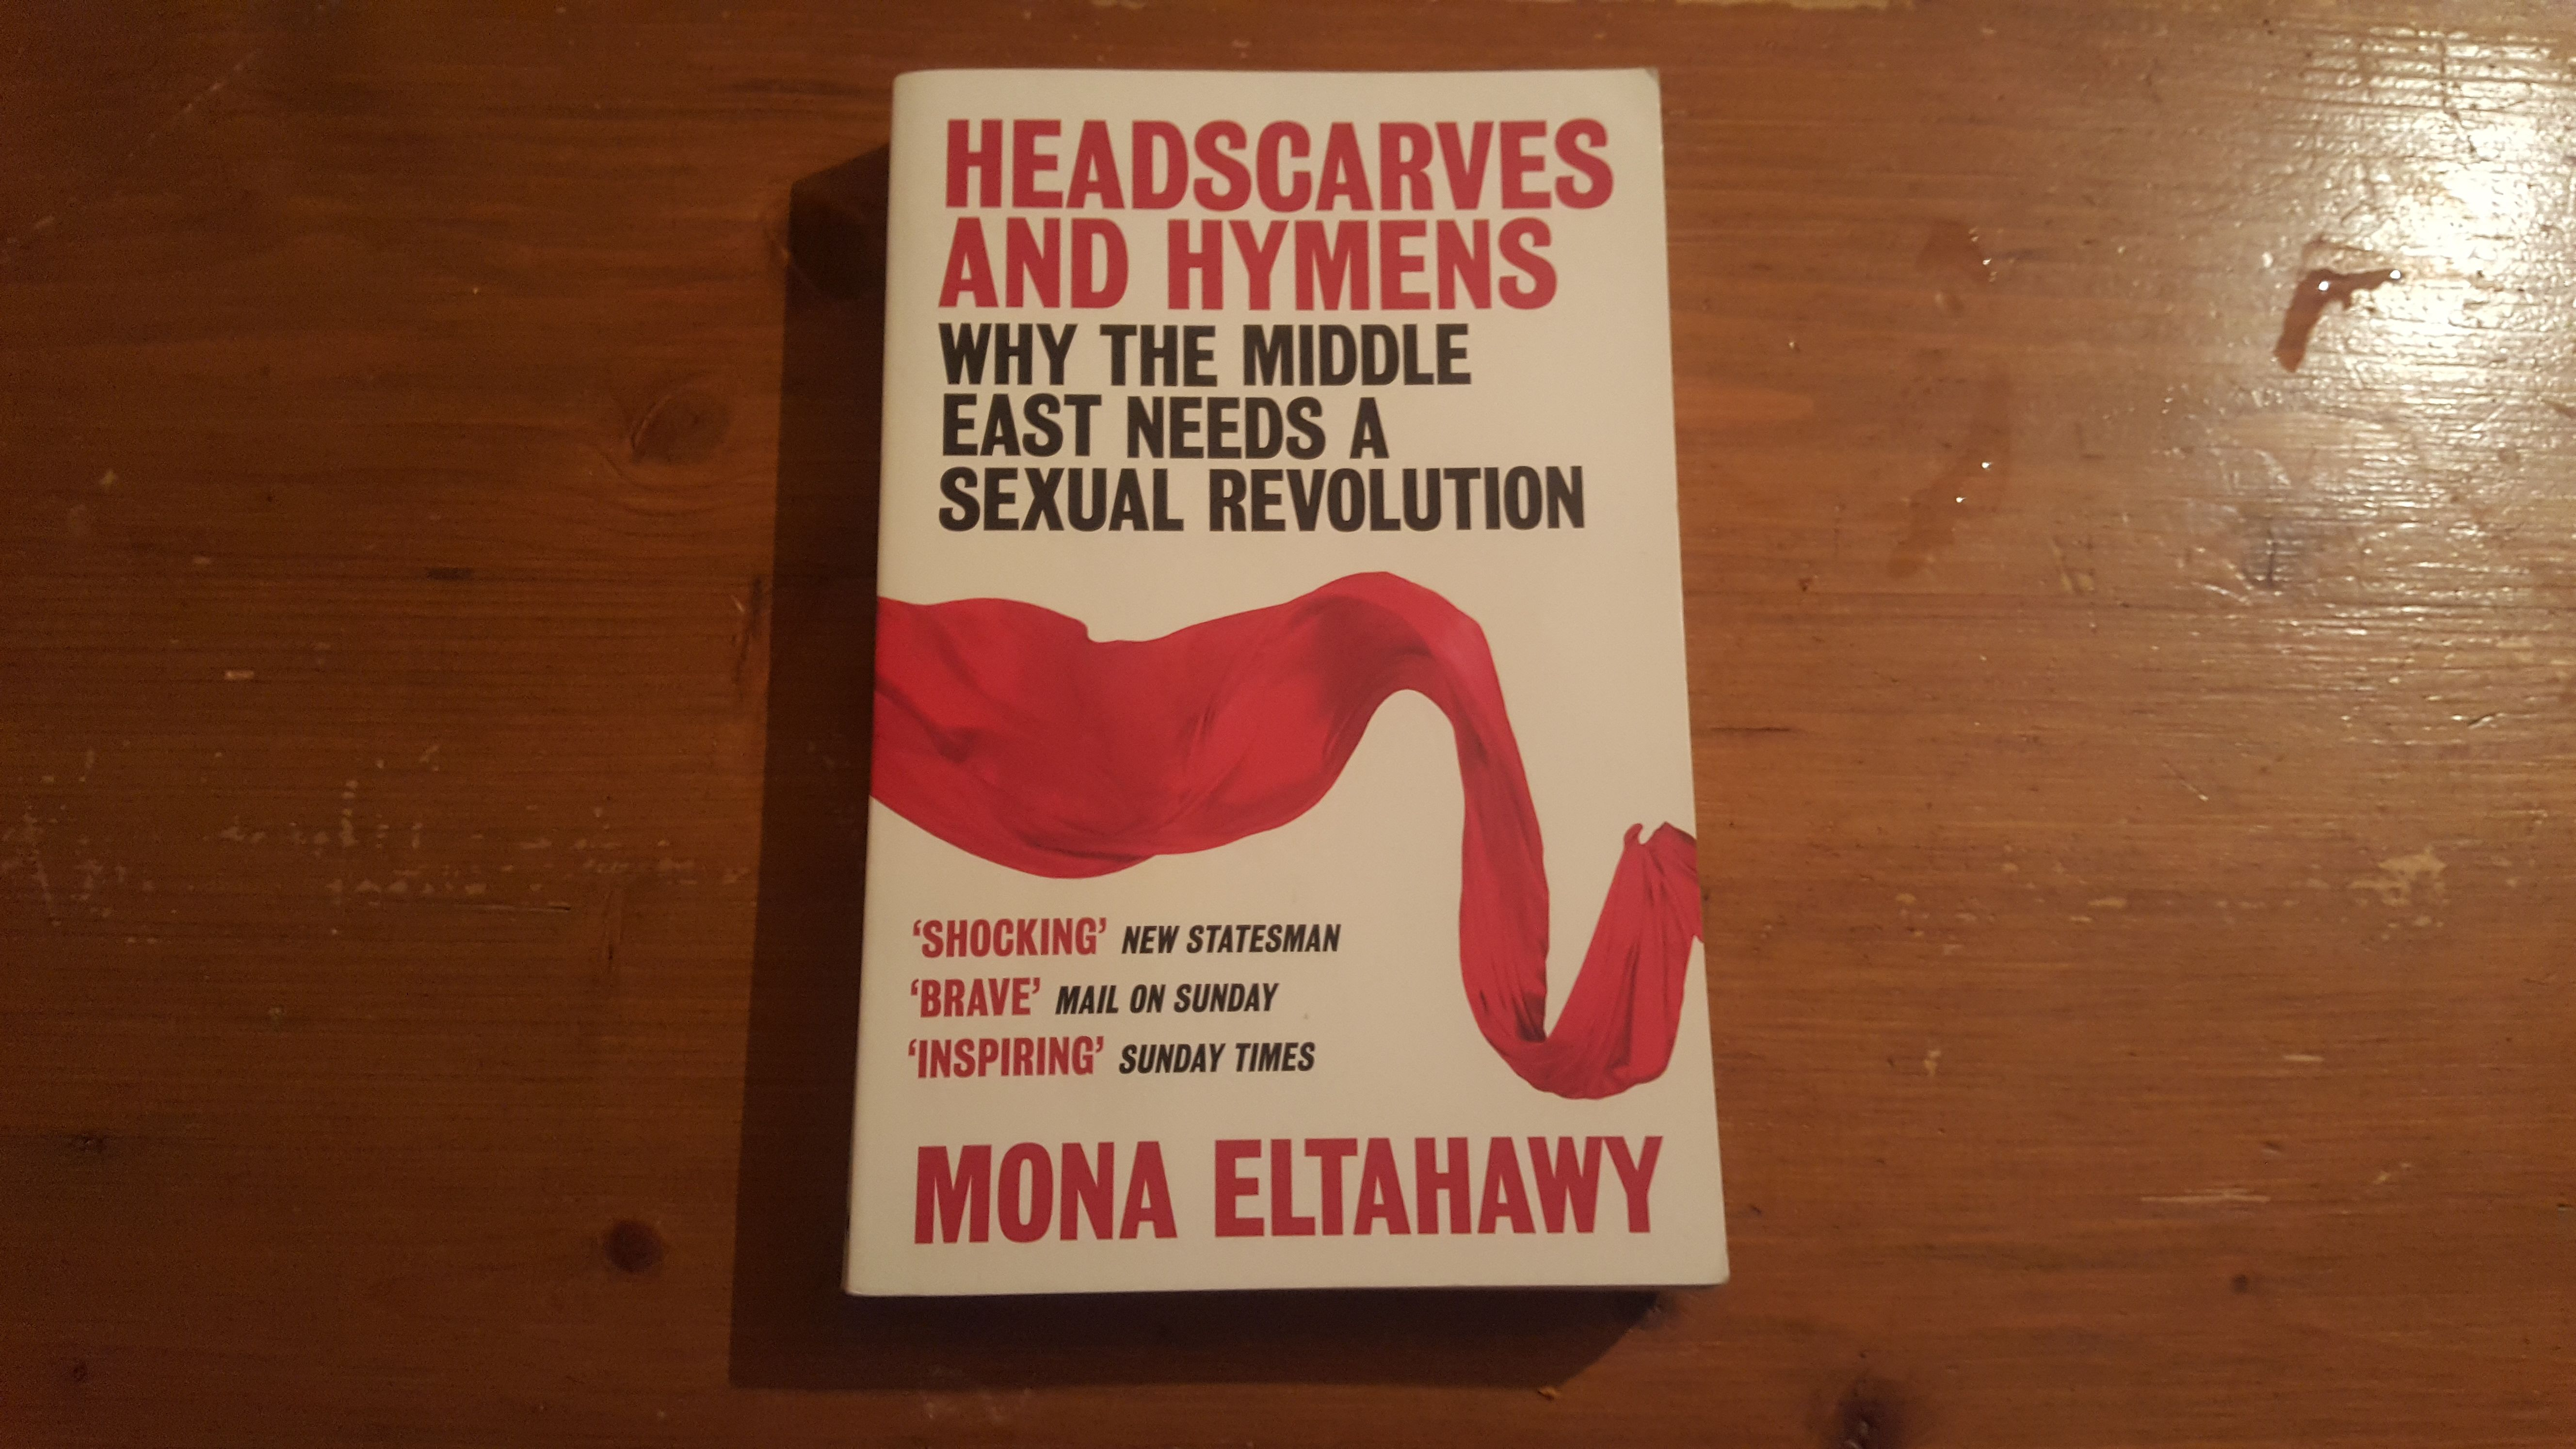 Headscarves and hymnes cover